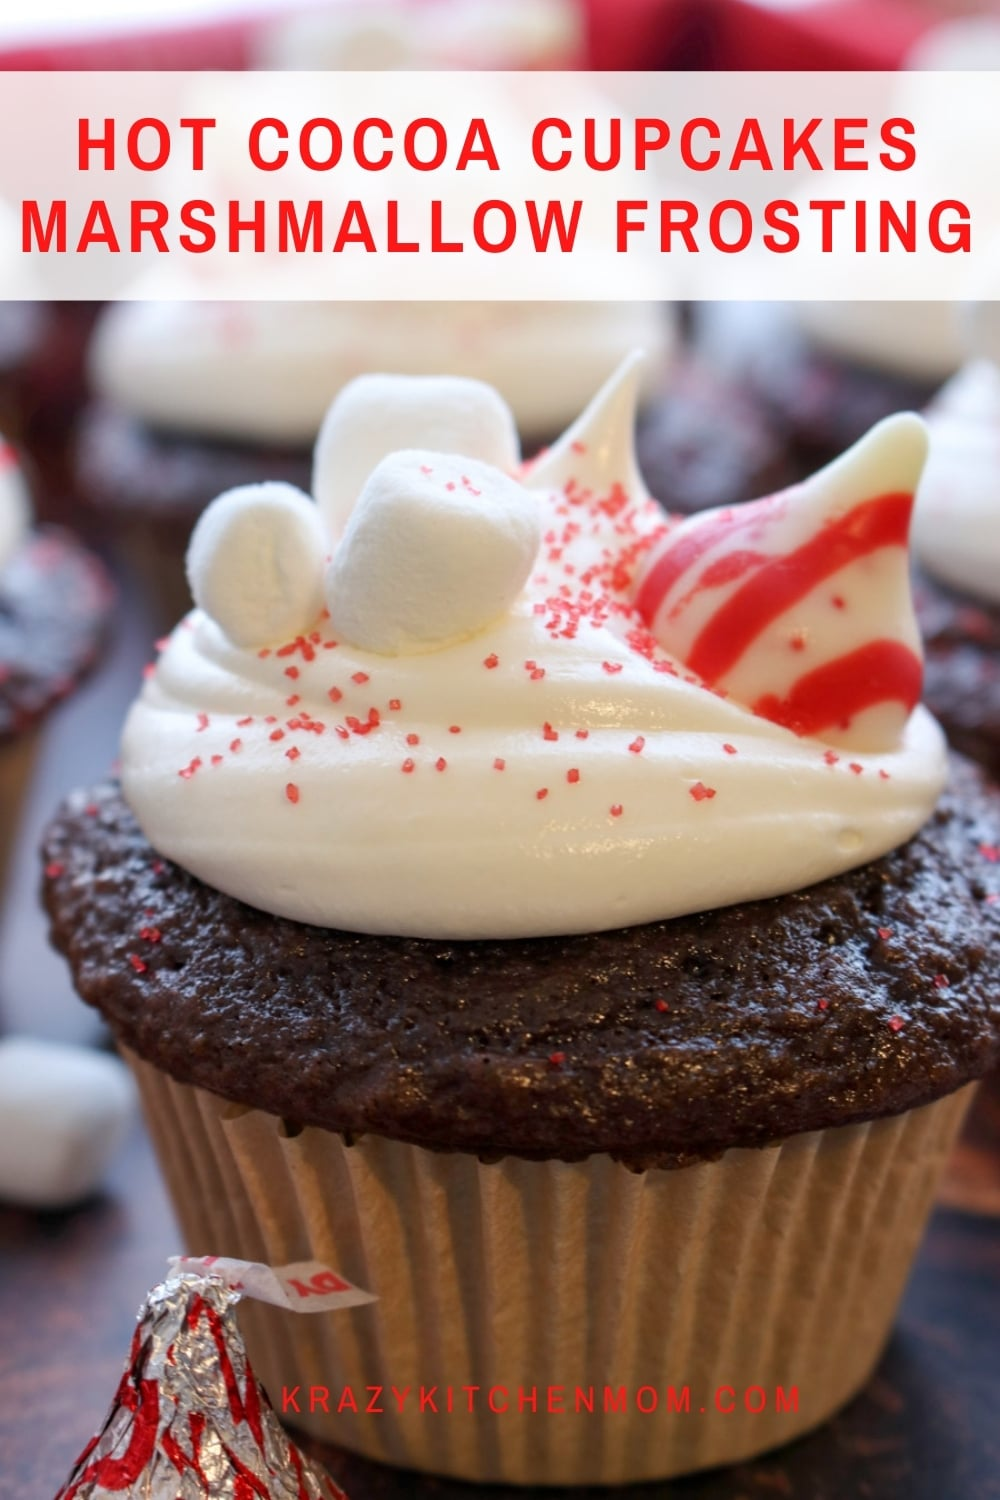 These cupcakes are made using easy store-bought ingredients for a moist, rich, and yummy flavor, topped with creamy marshmallow frosting. via @krazykitchenmom